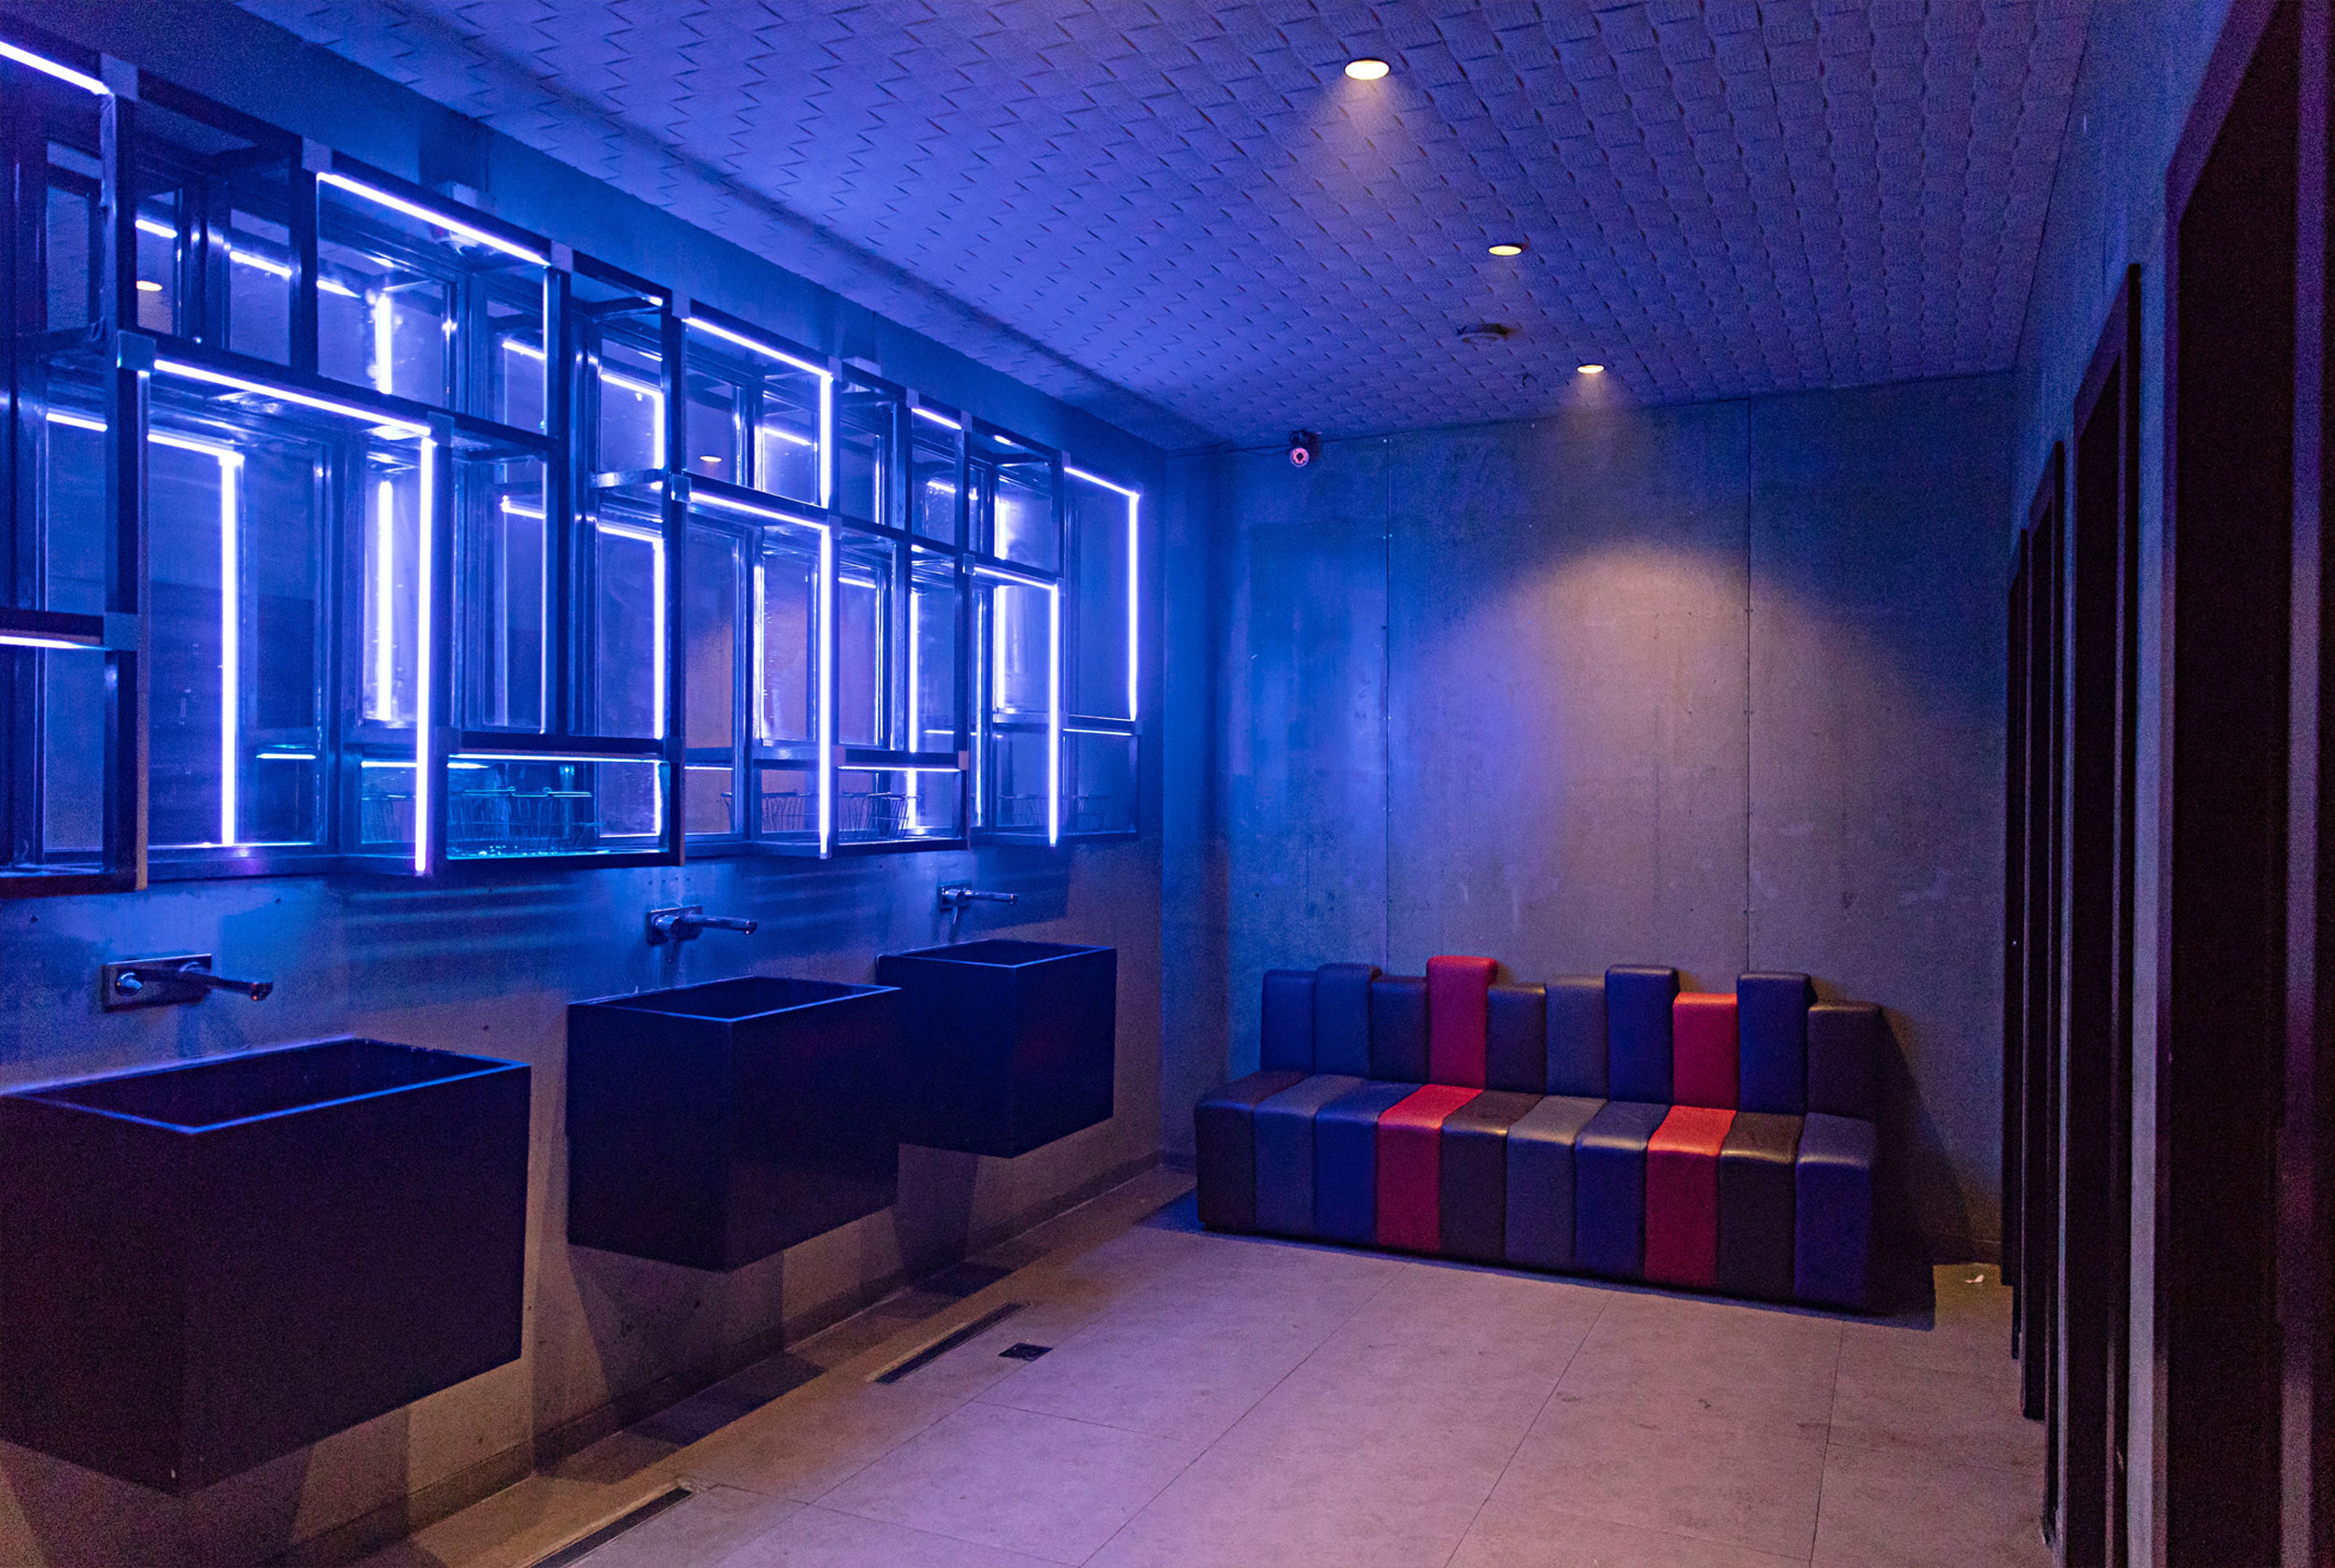 Night club led wall - interior design